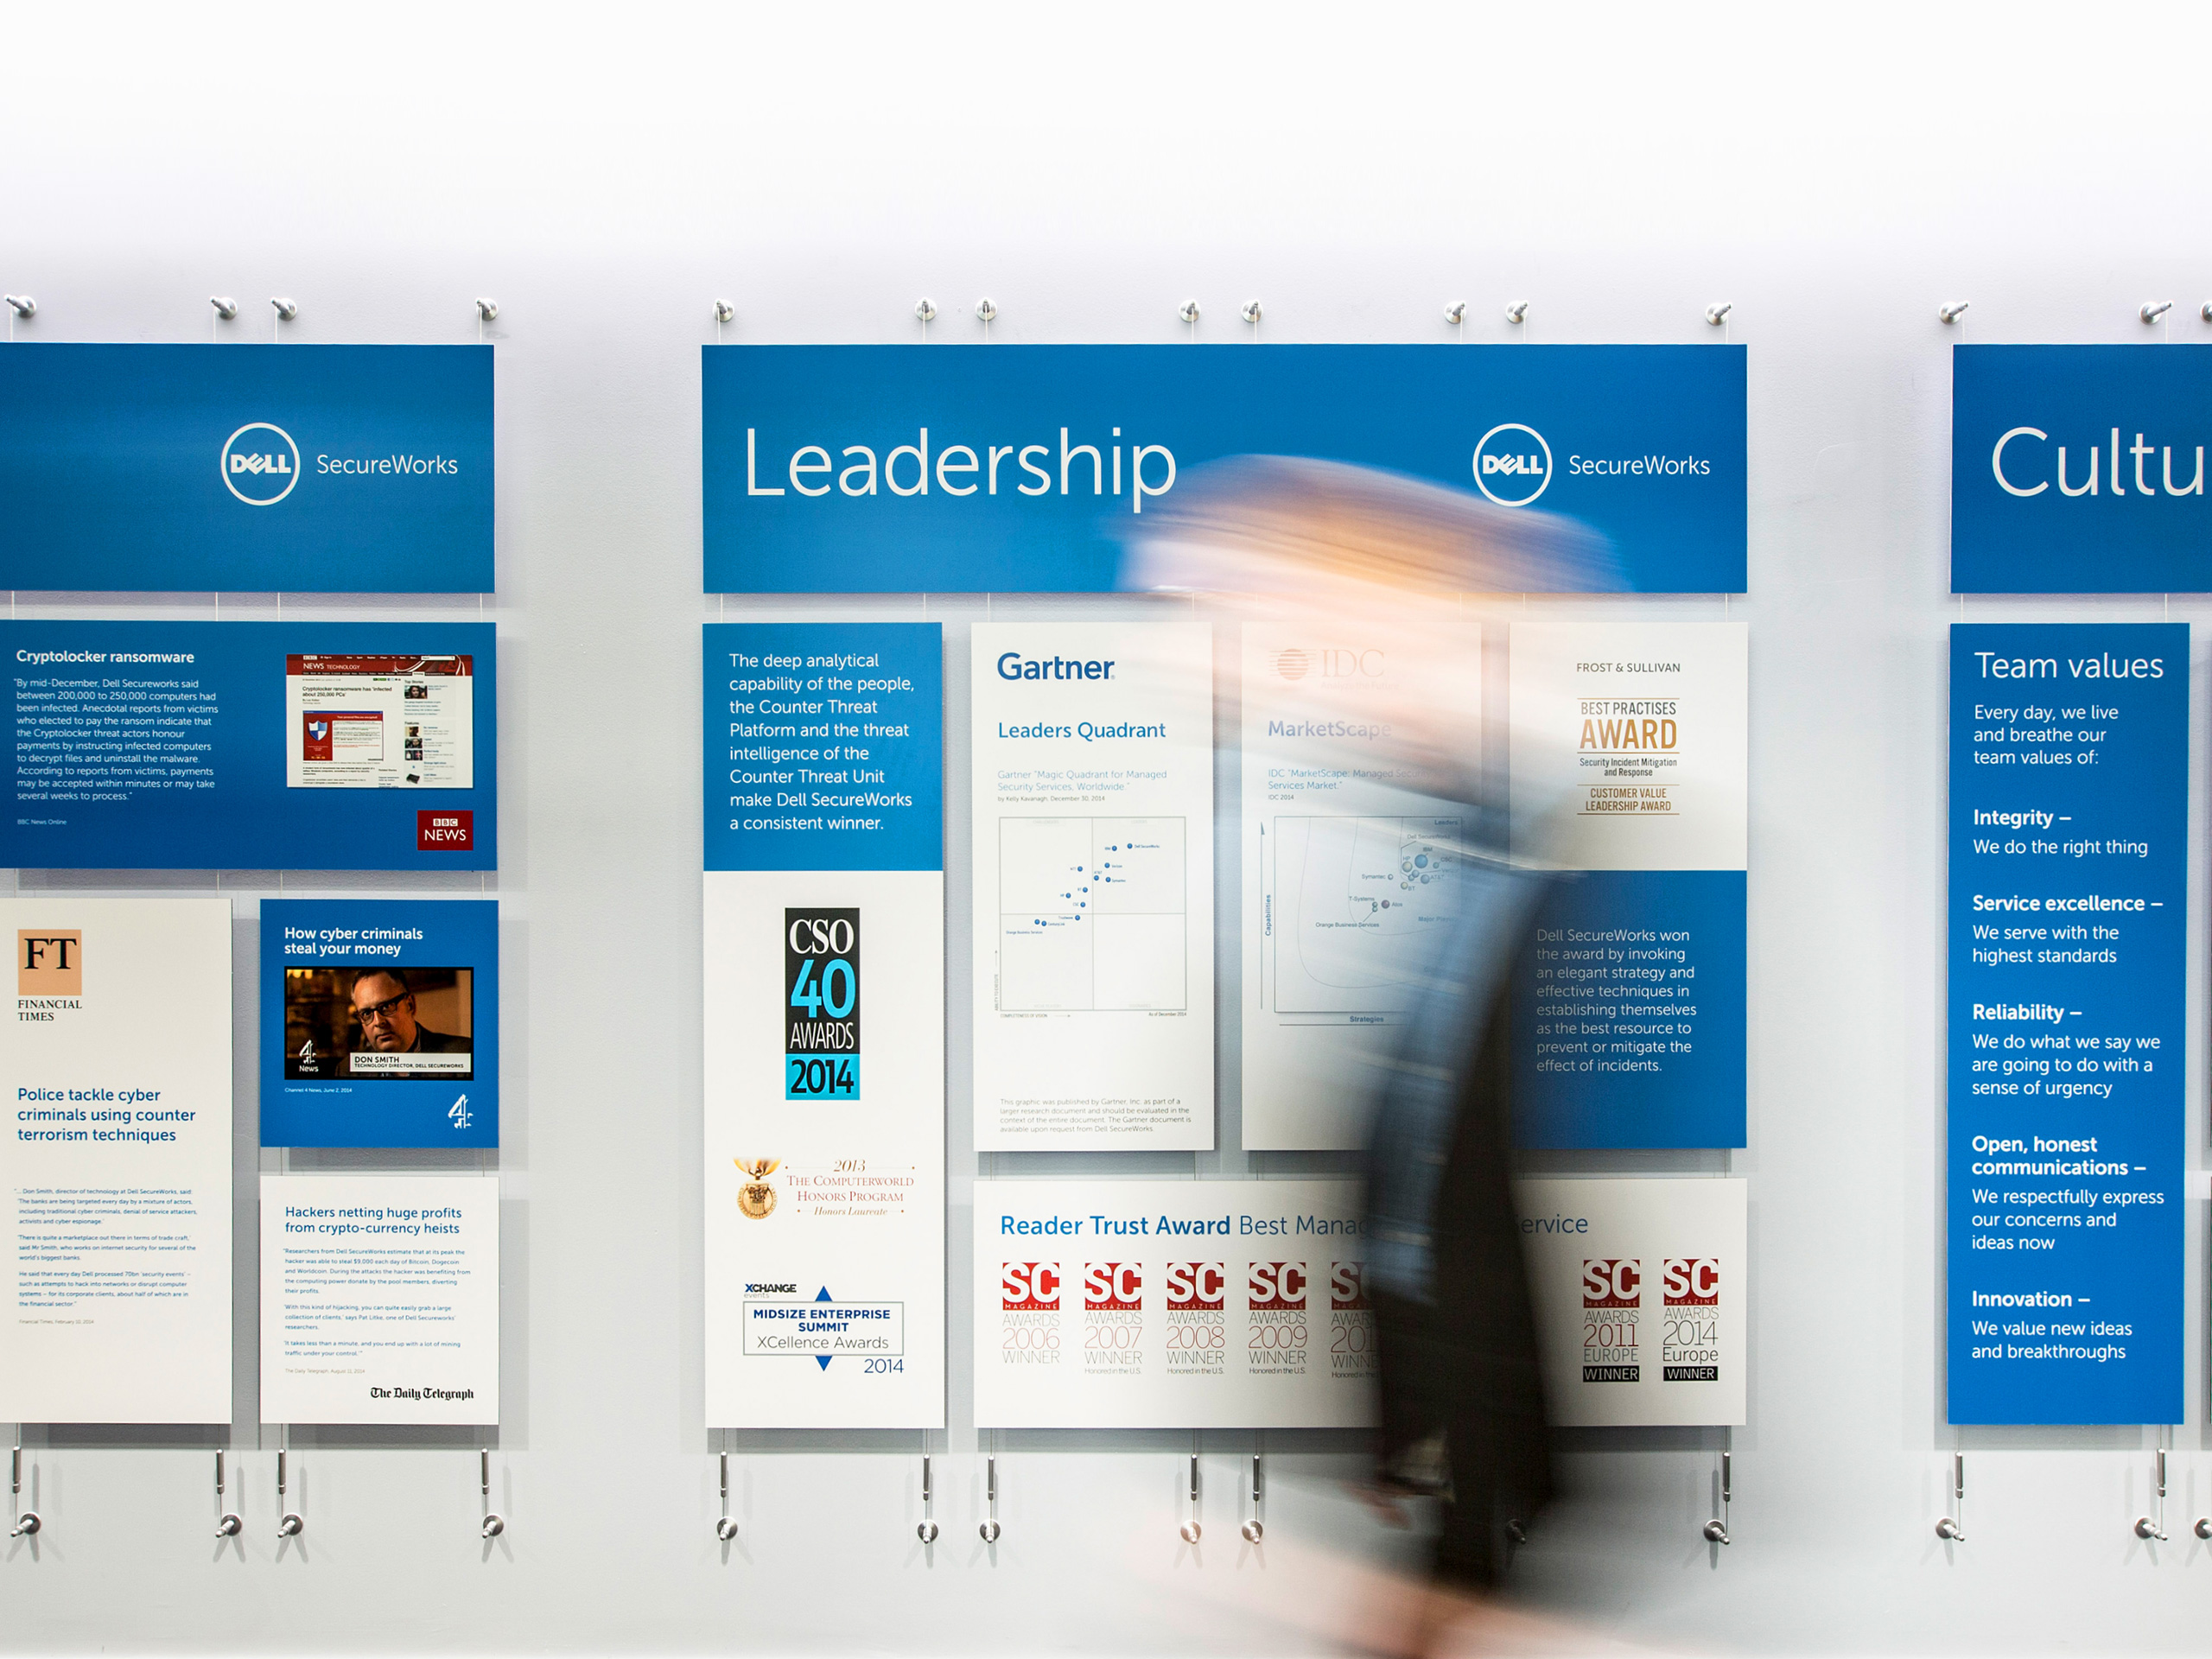 Dell Secureworks - Environmental & Experiential Design - Wall of Fame